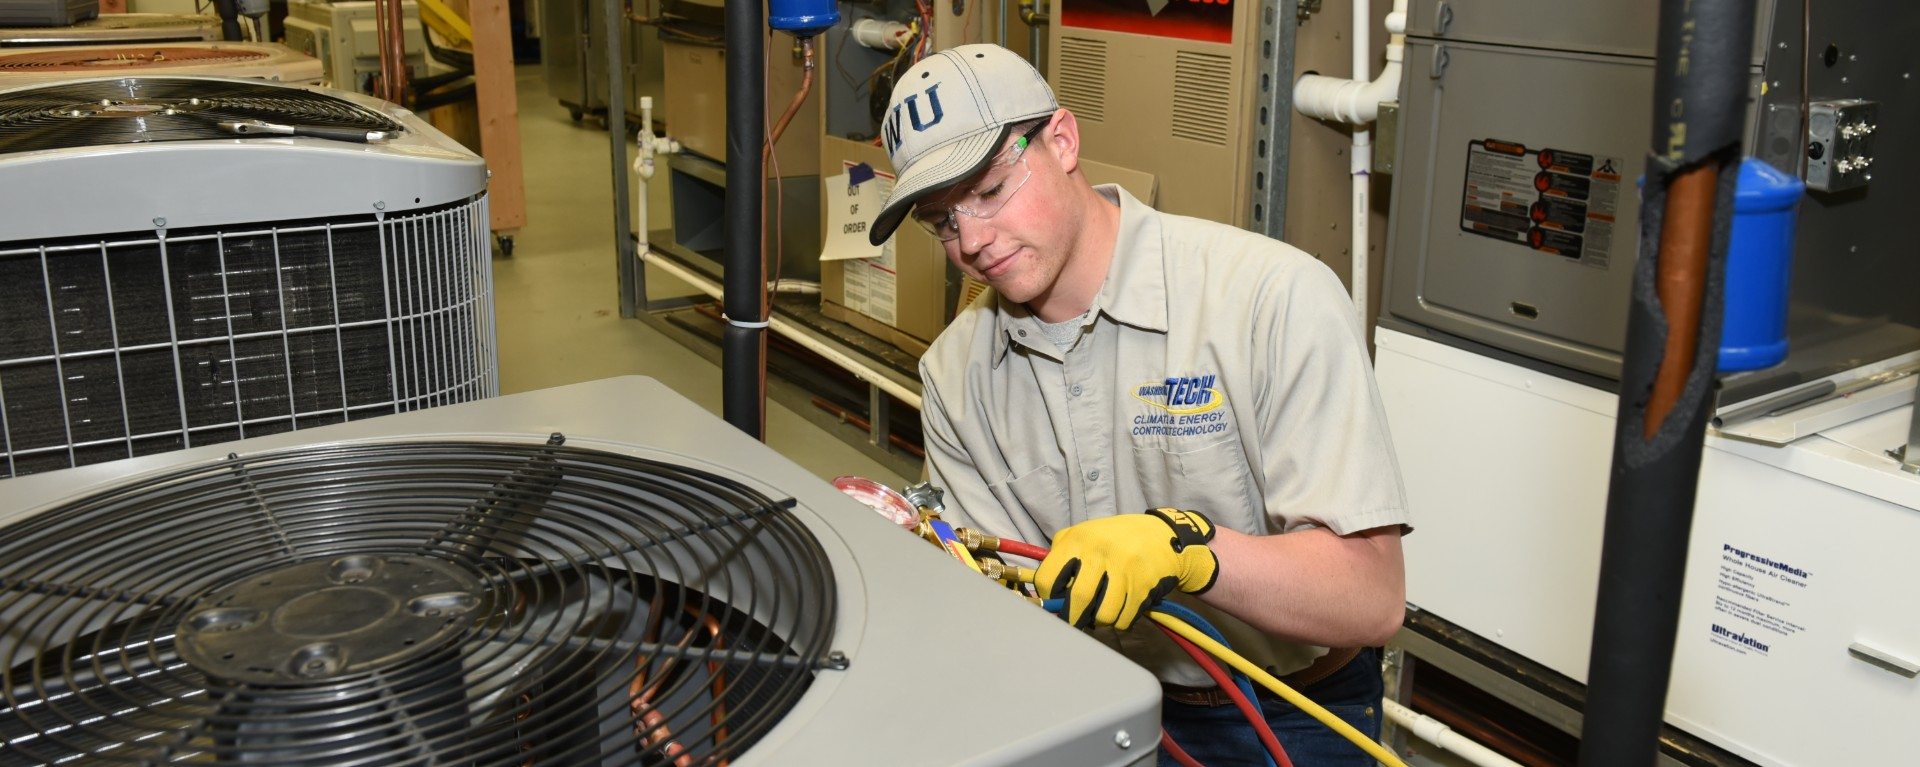 HVAC student in the lab